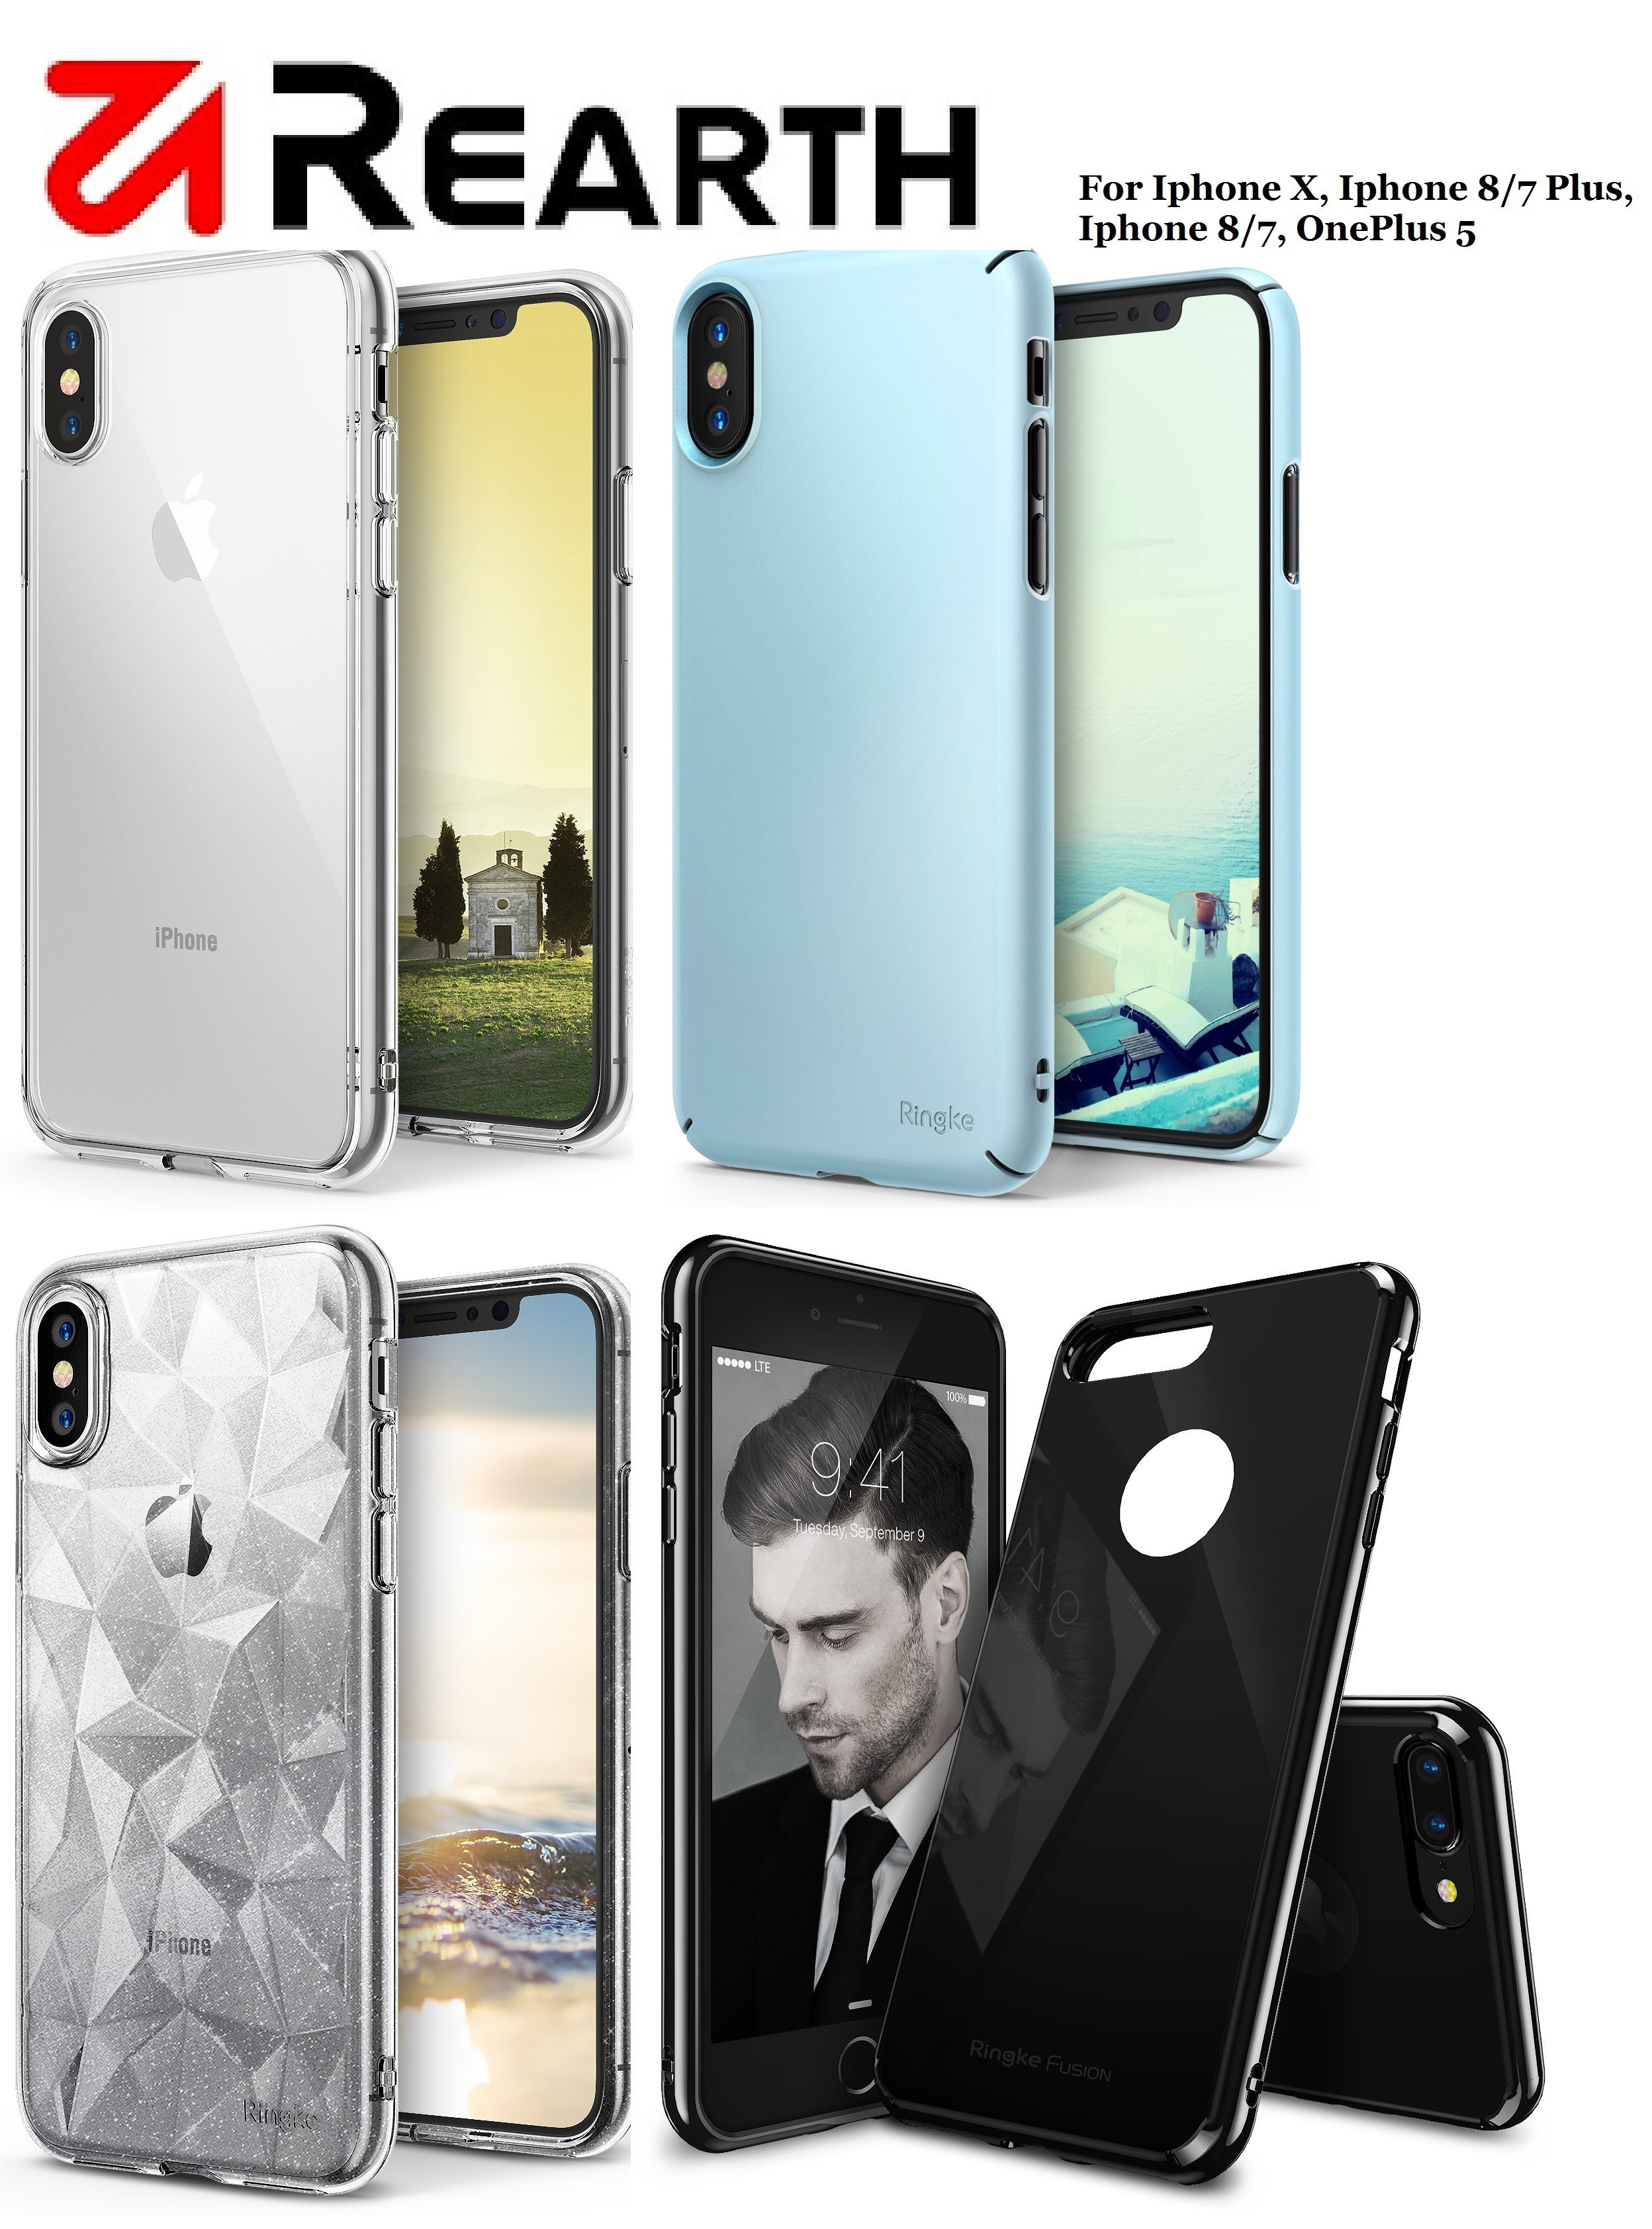 Qoo10 Iphone Xs Max Xr X 8 7 Oneplus 5 Case By Ringke Rearth Edge Black Actual Size